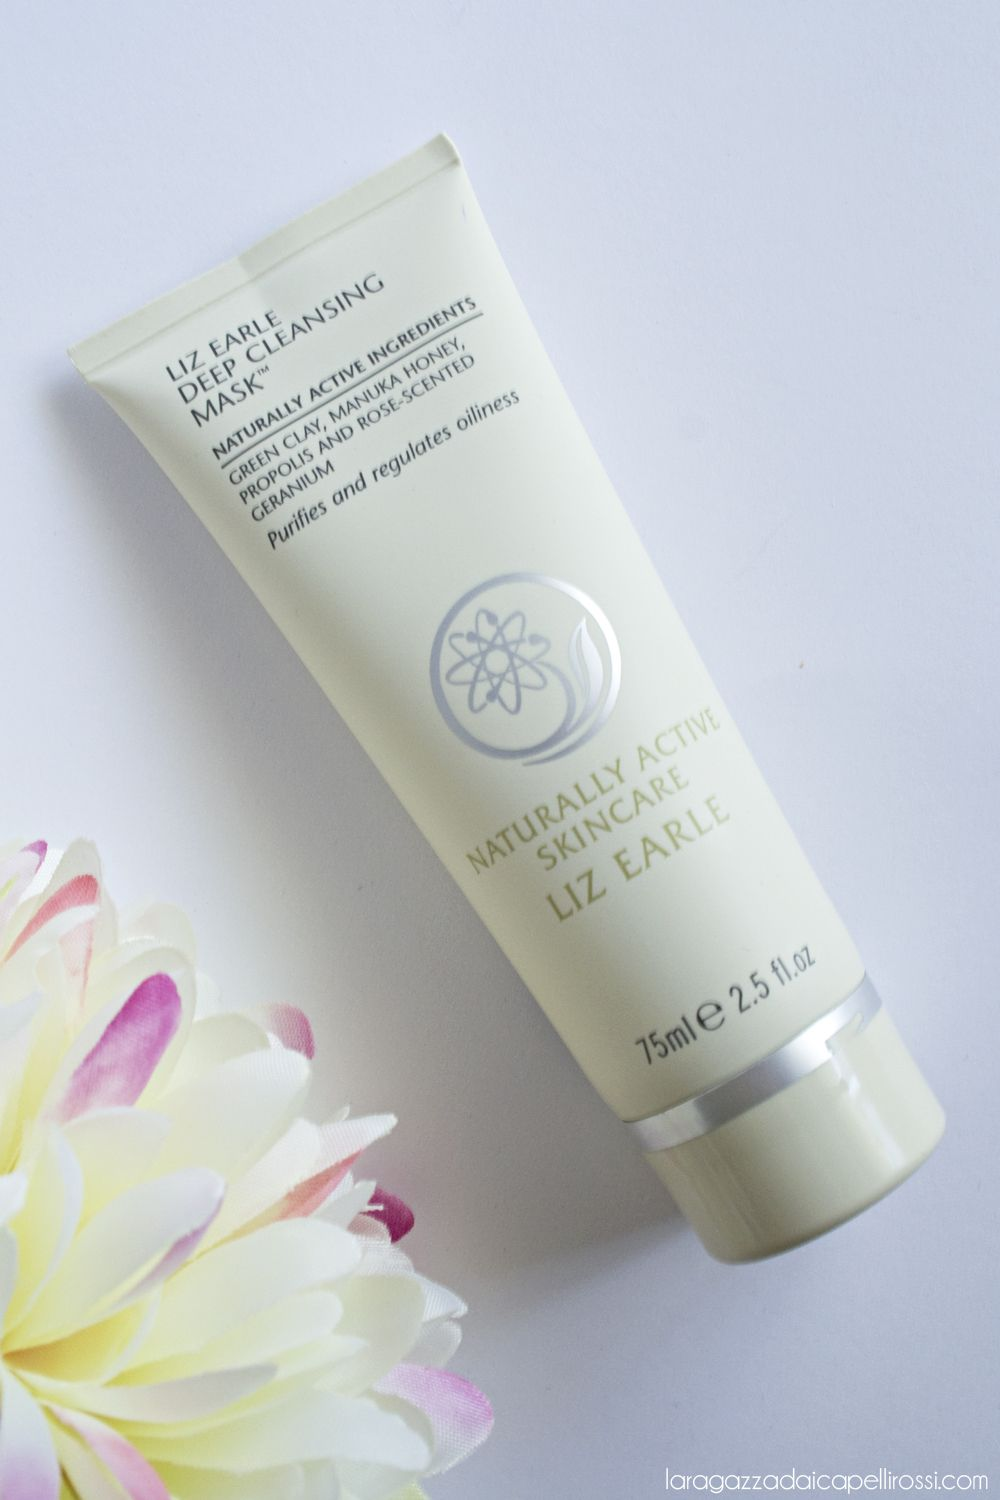 REVIEW LIZ EARLE NATURALLY ACTIVE SKINCARE